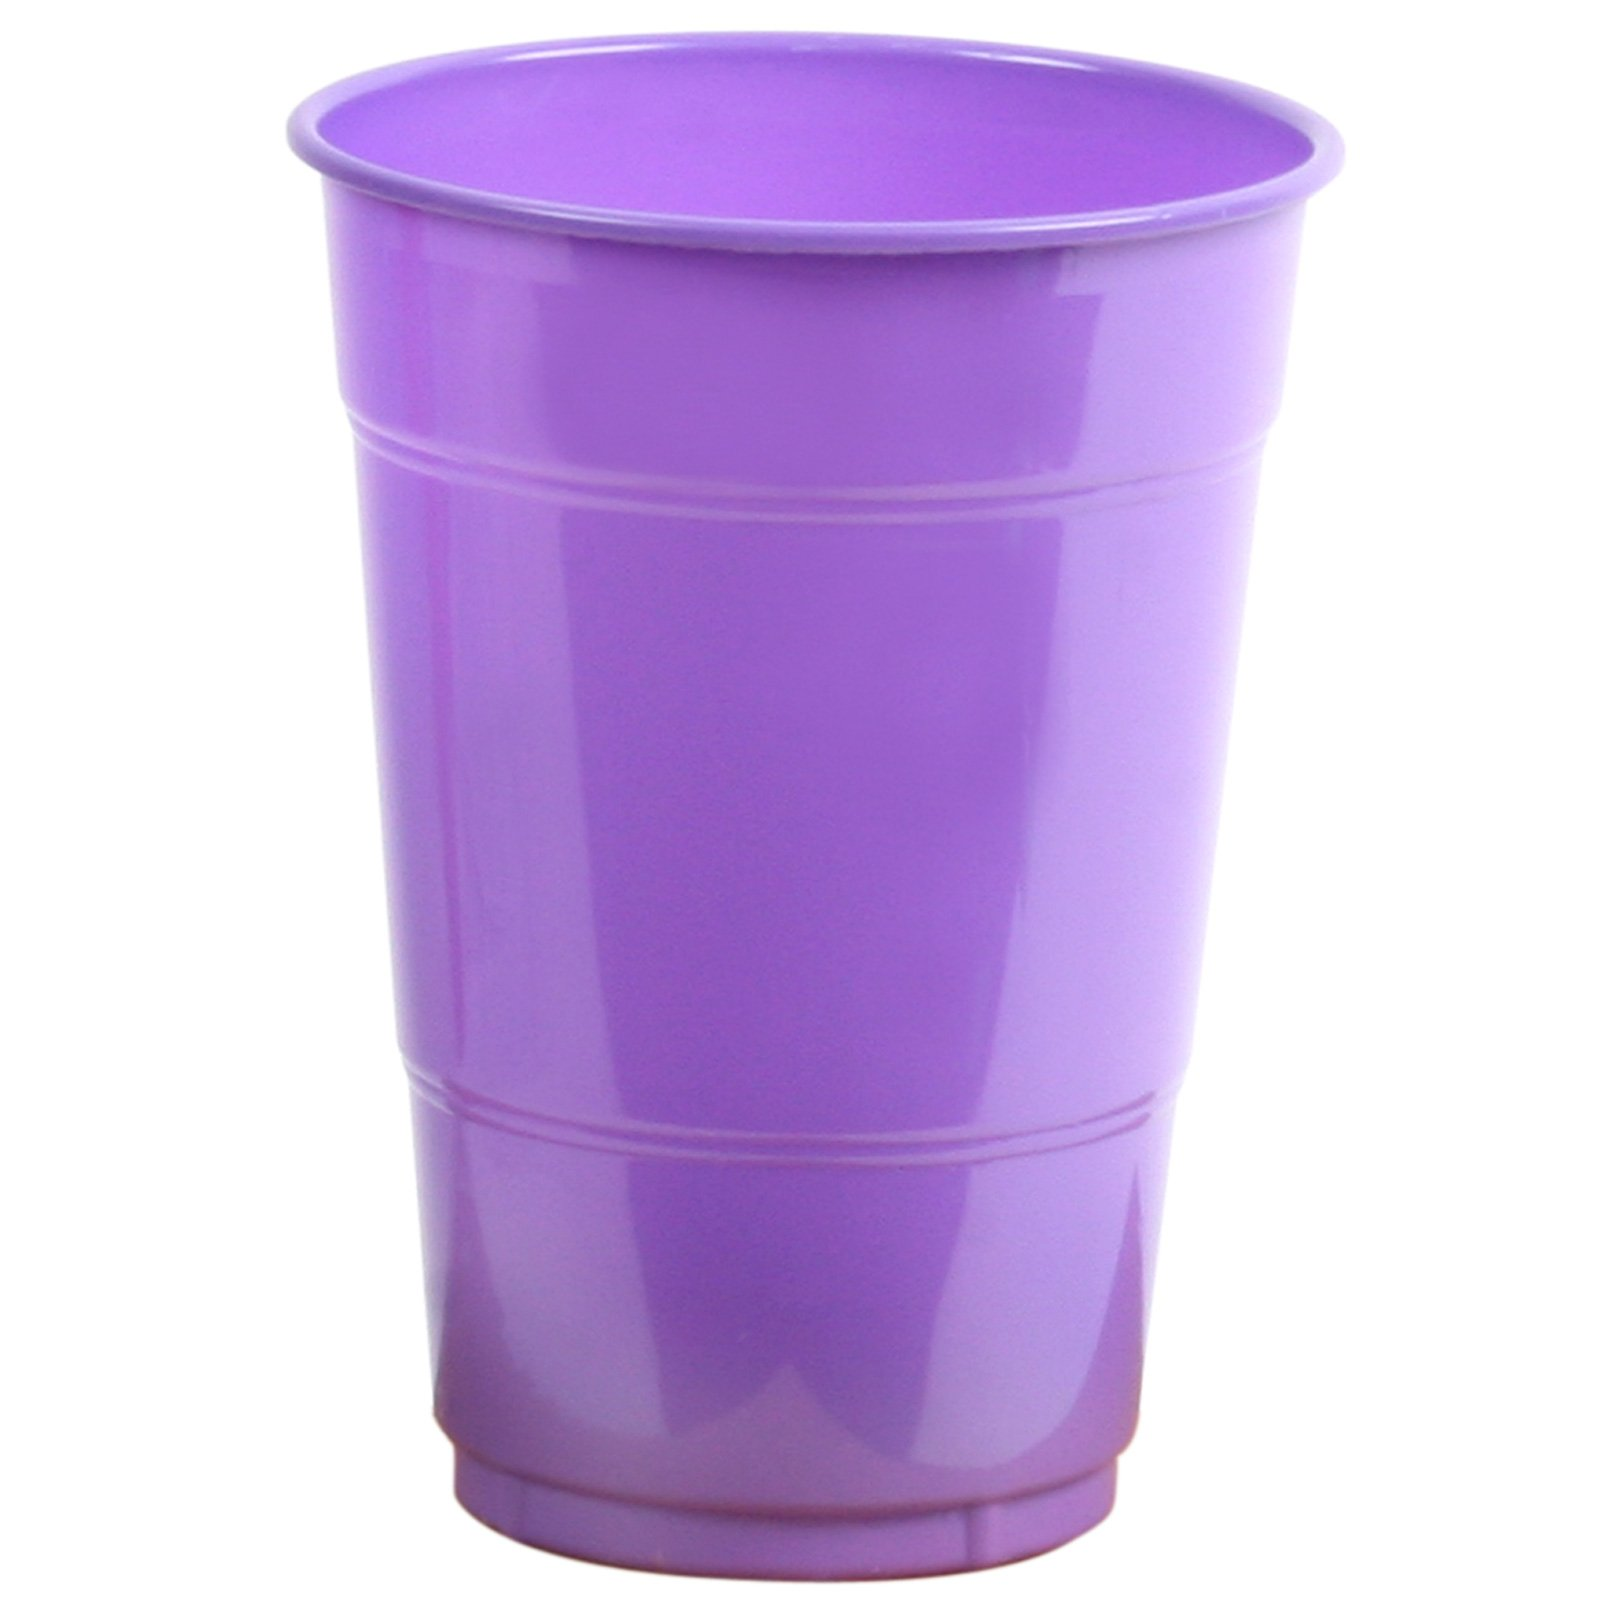 Simply Purple 16 oz. Plastic Cups (20 count)